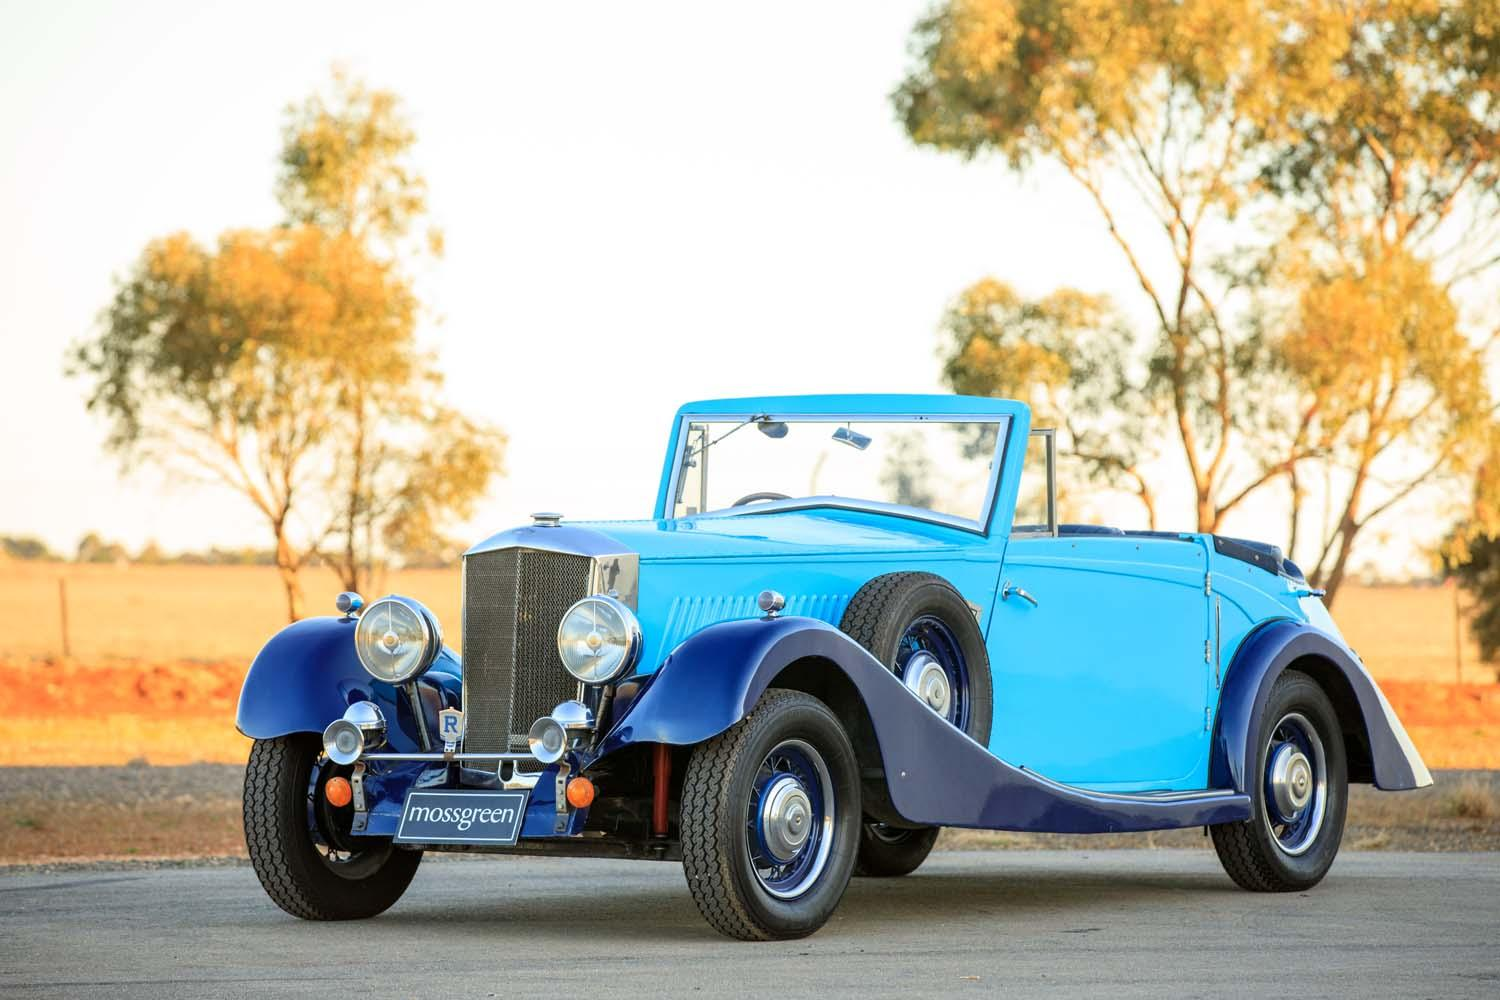 1935 Railton Fairmile One Drophead